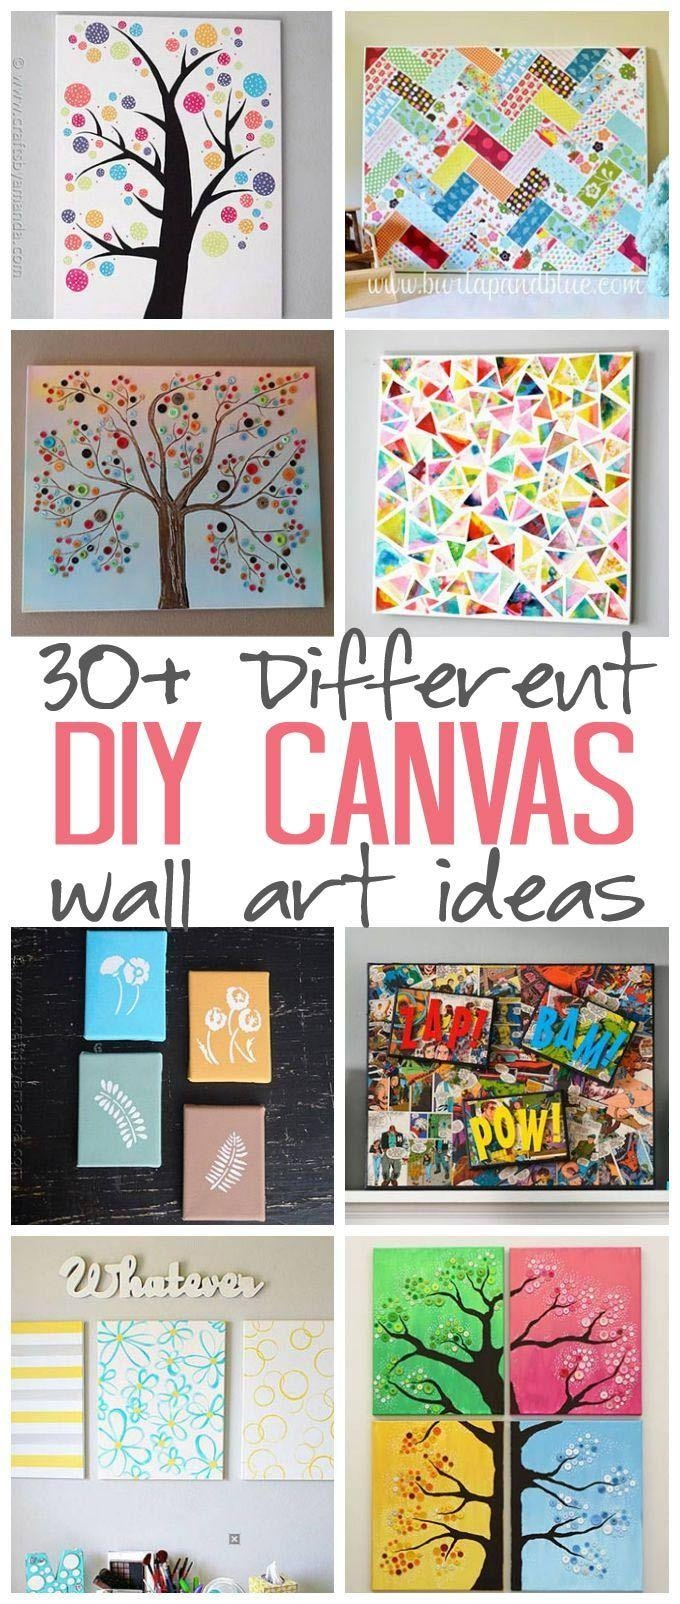 105 Best Art For Me Images On Pinterest | Diy, Drawings And Kid Inside Diy Pinterest Canvas Art (View 7 of 20)